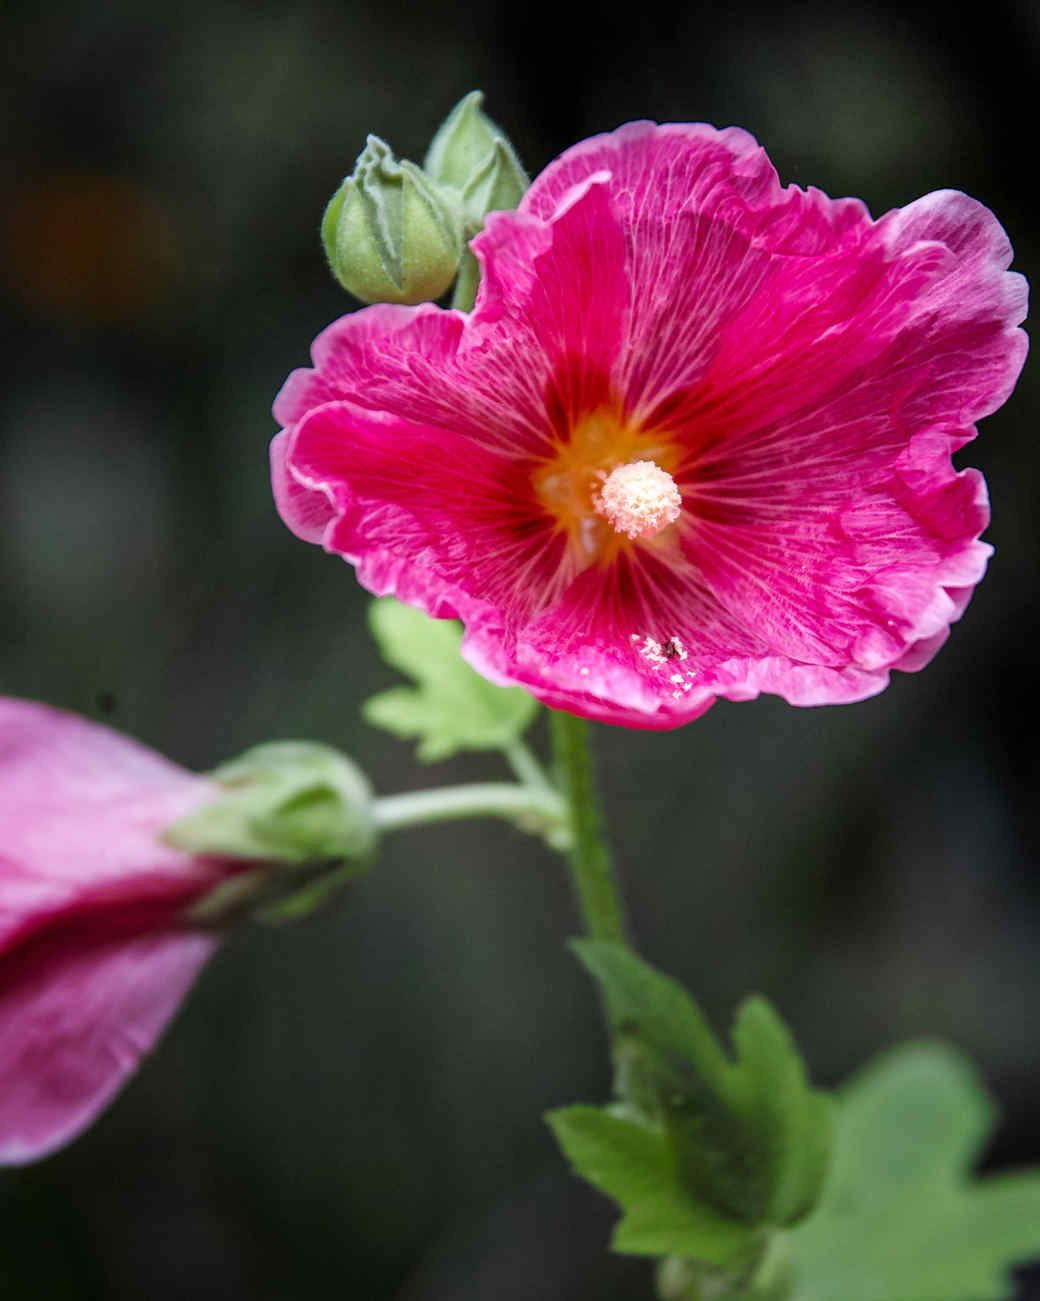 pink rose of sharon flowers